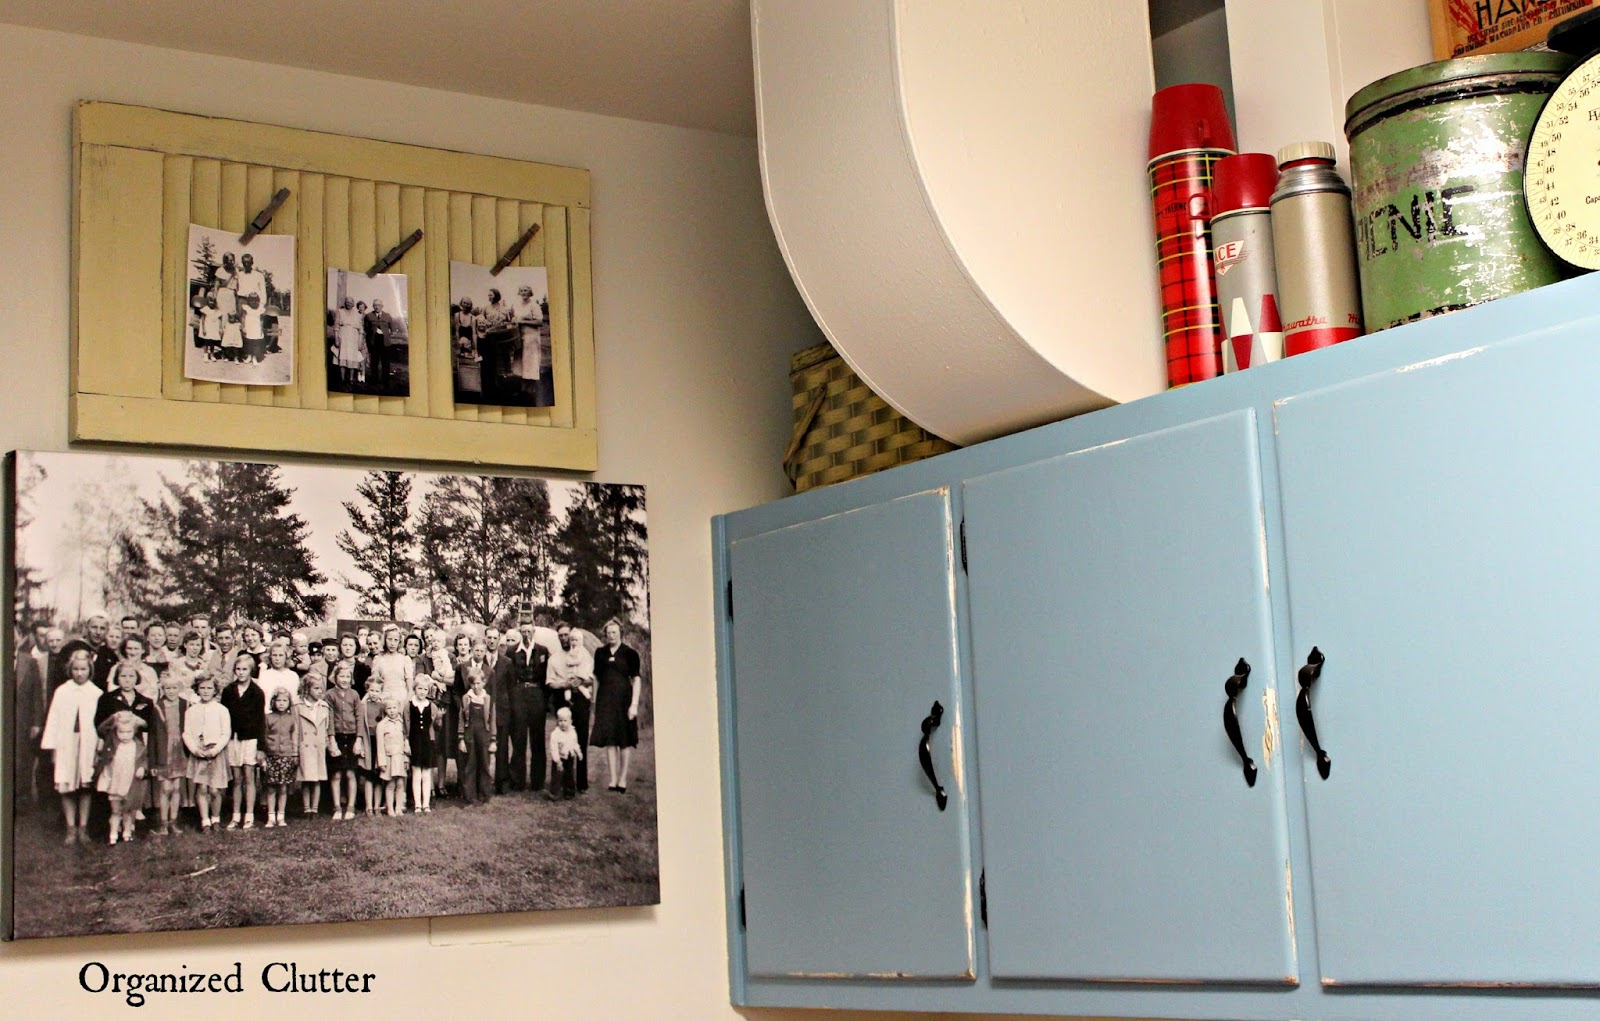 Vintage Family Photo on Canvas www.organizedclutterqueen.blogspot.com